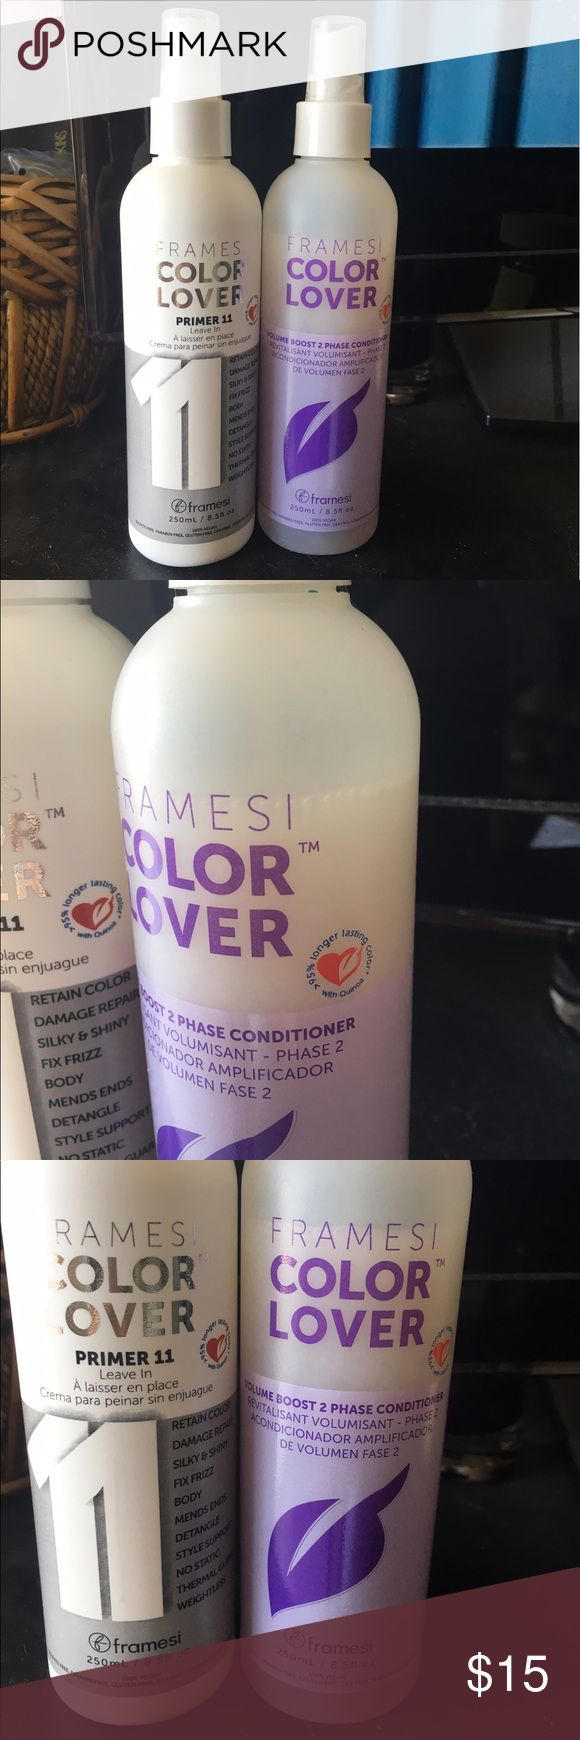 Framesi color lover primer and conditioner all white bottle is a spray leave in unused and brand new, purchased from a local hair salon for $16 The clearish bottle is a spray leave in CONDITIONER  that is used after the white bottle only used a little as u can see purchased from a local hair salon for $19 Both can be used on any type of hair, great for colored/dyed hair because this stuff TRUELY keeps the color in there WAY LONGER I purchased from a fellow seller on here recently but ended…